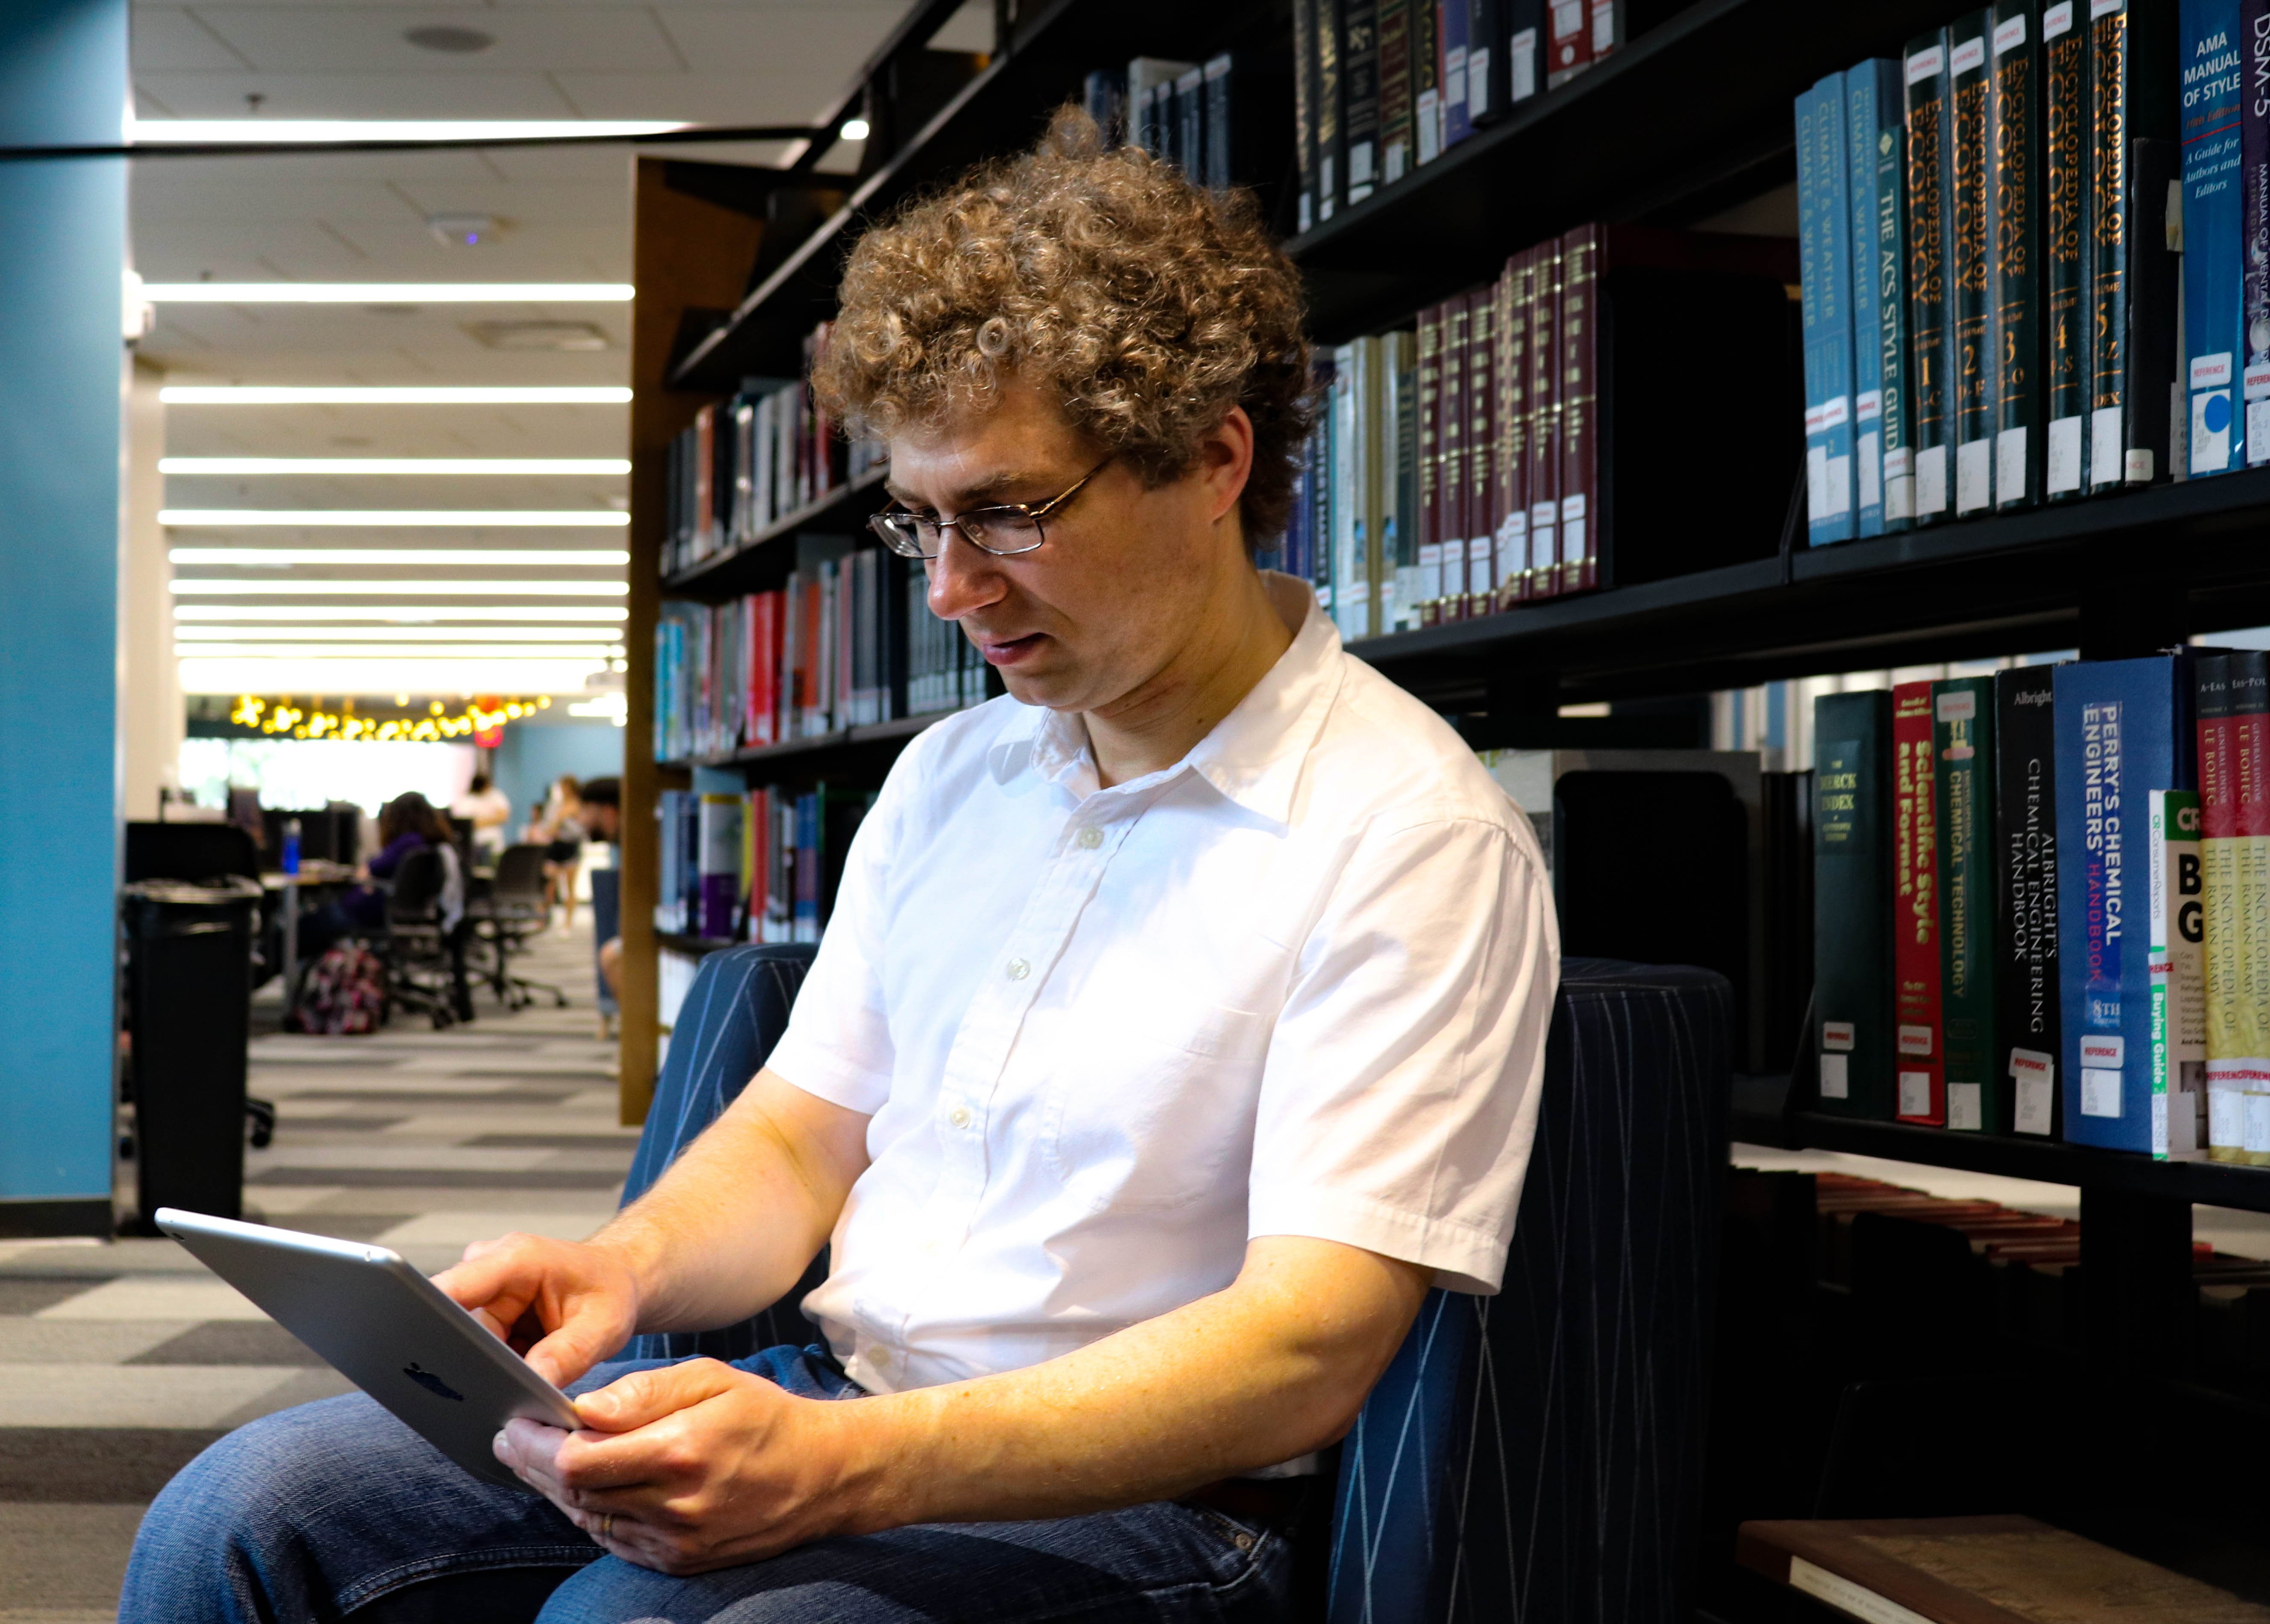 ACQUIRE BY DEMAND—Demand-driven acquisition is practiced at the University of Dayton for less expensive e-book purchasing. Here, Associate Professor of Psychology Viorel Paslaru spends time inside Roesch Library reading an e-book.